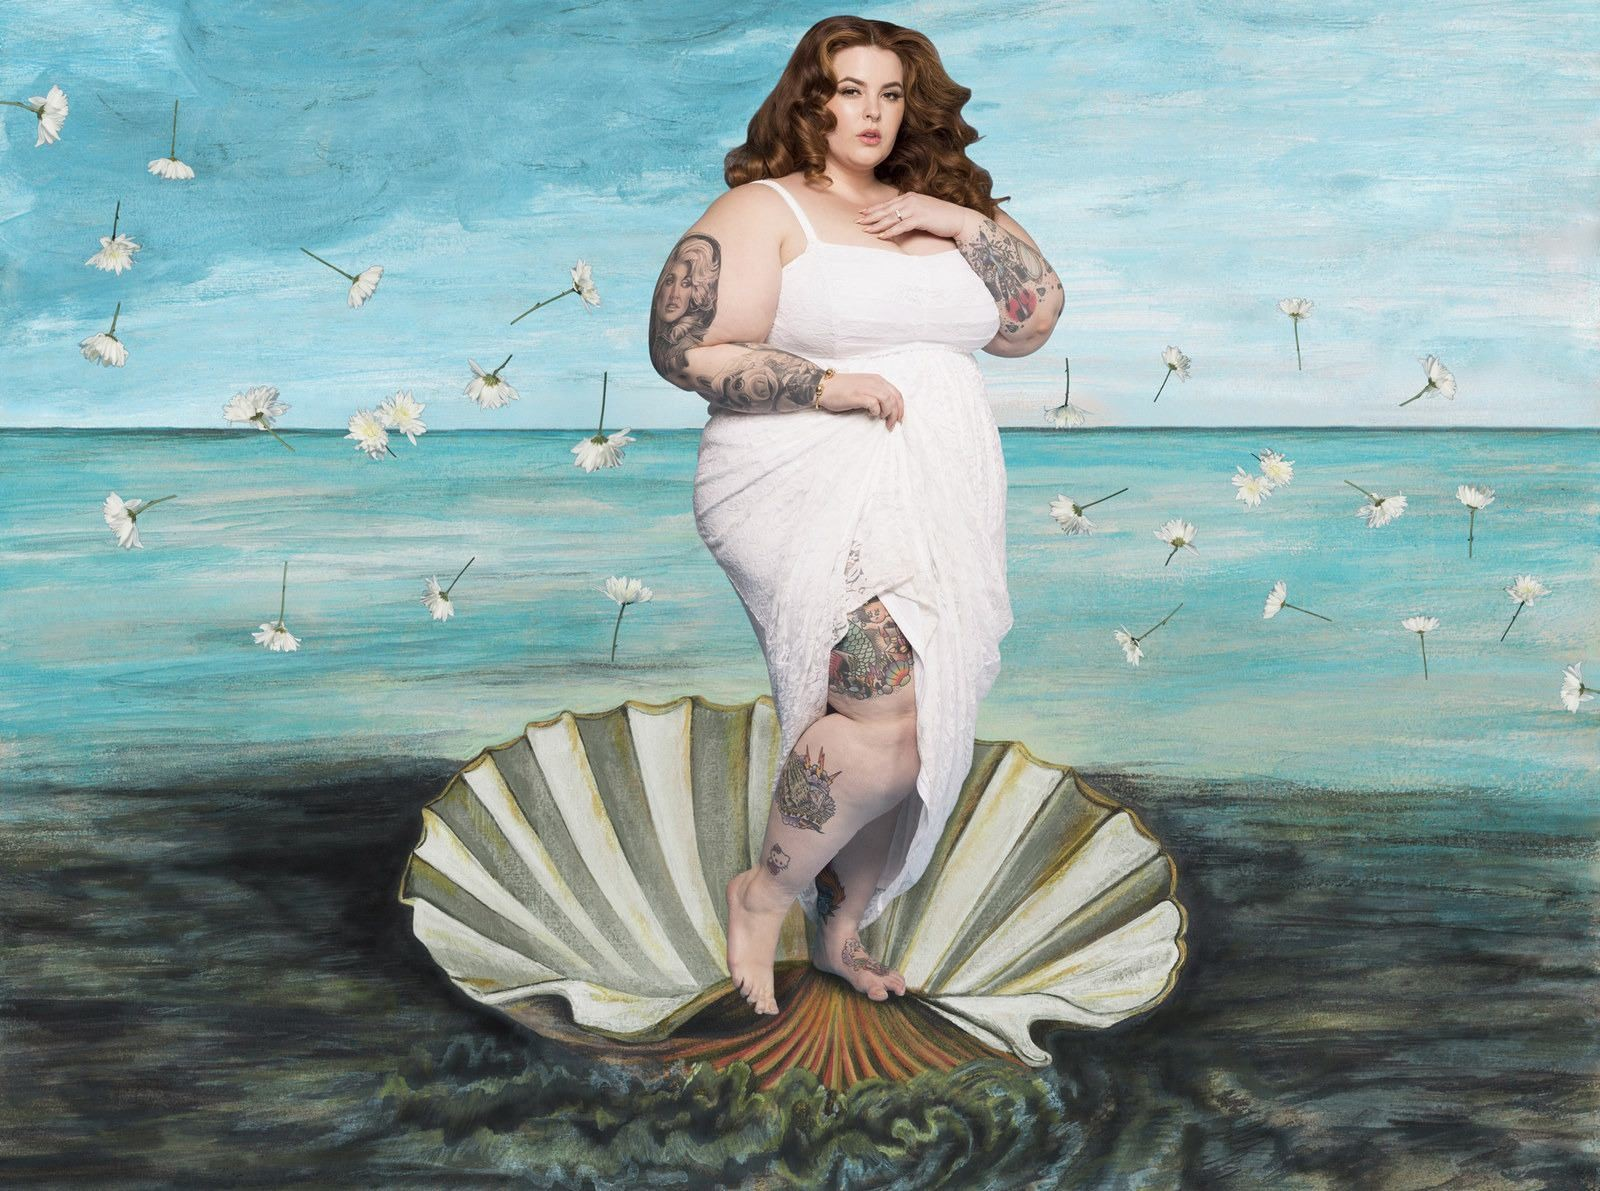 Tess Holliday Is The Biggest Thing To Happen To Modeling